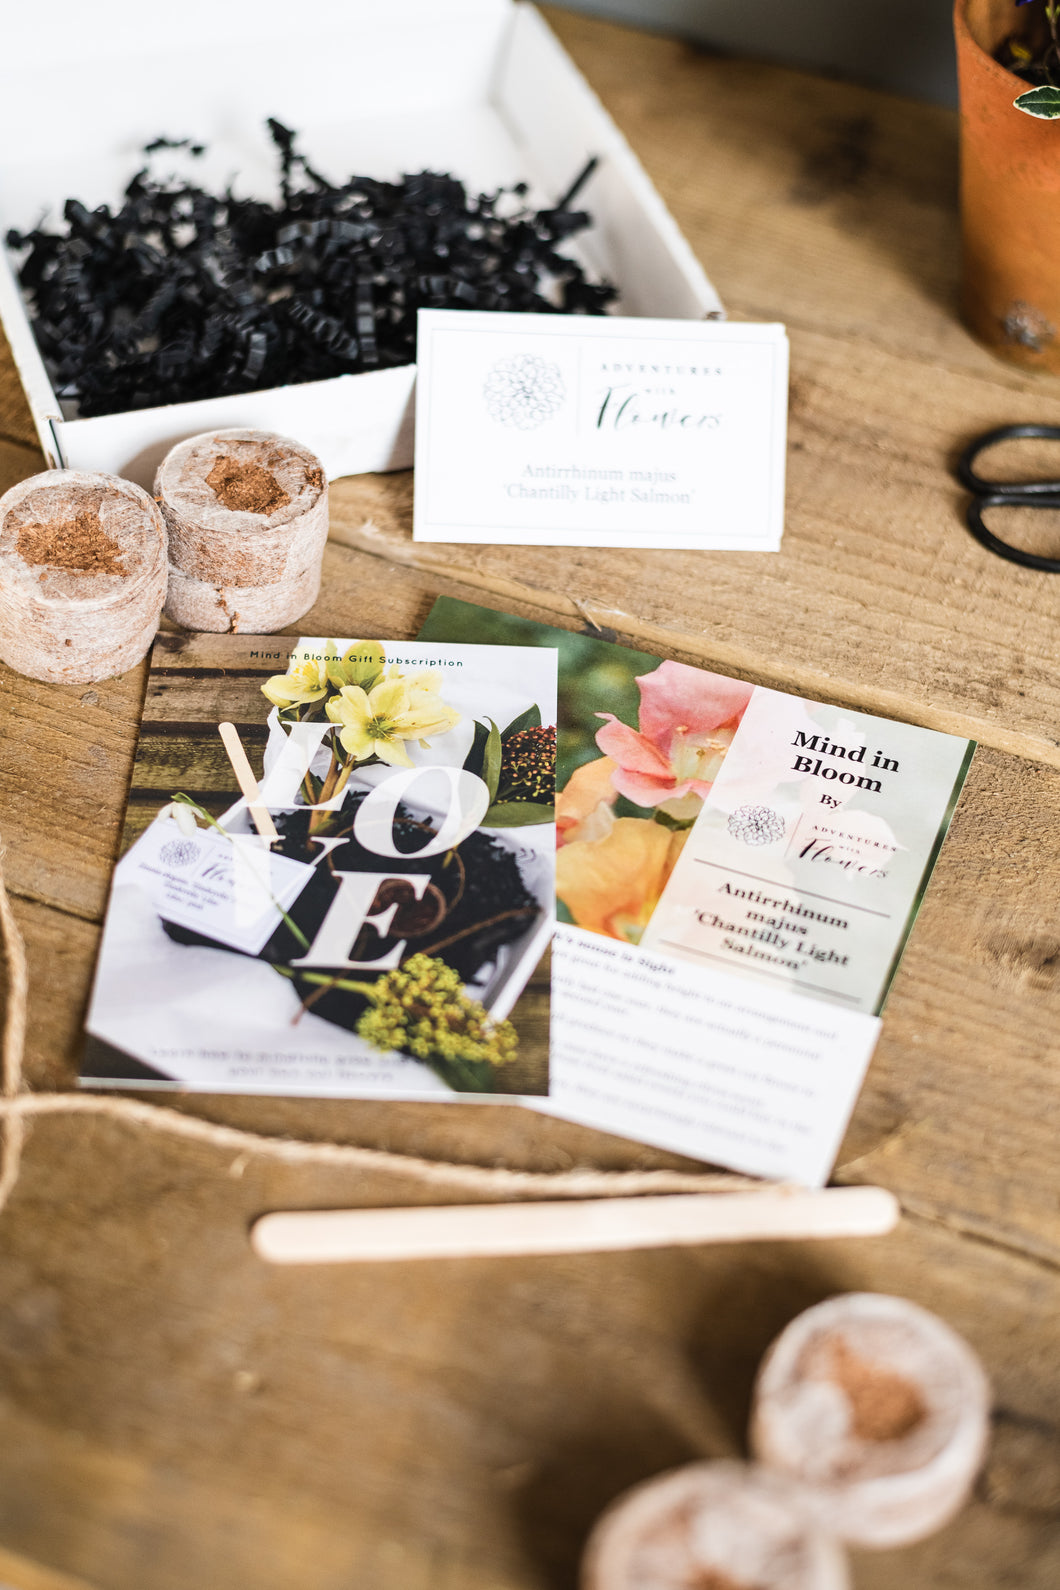 Mind in Bloom Box Gift Experience